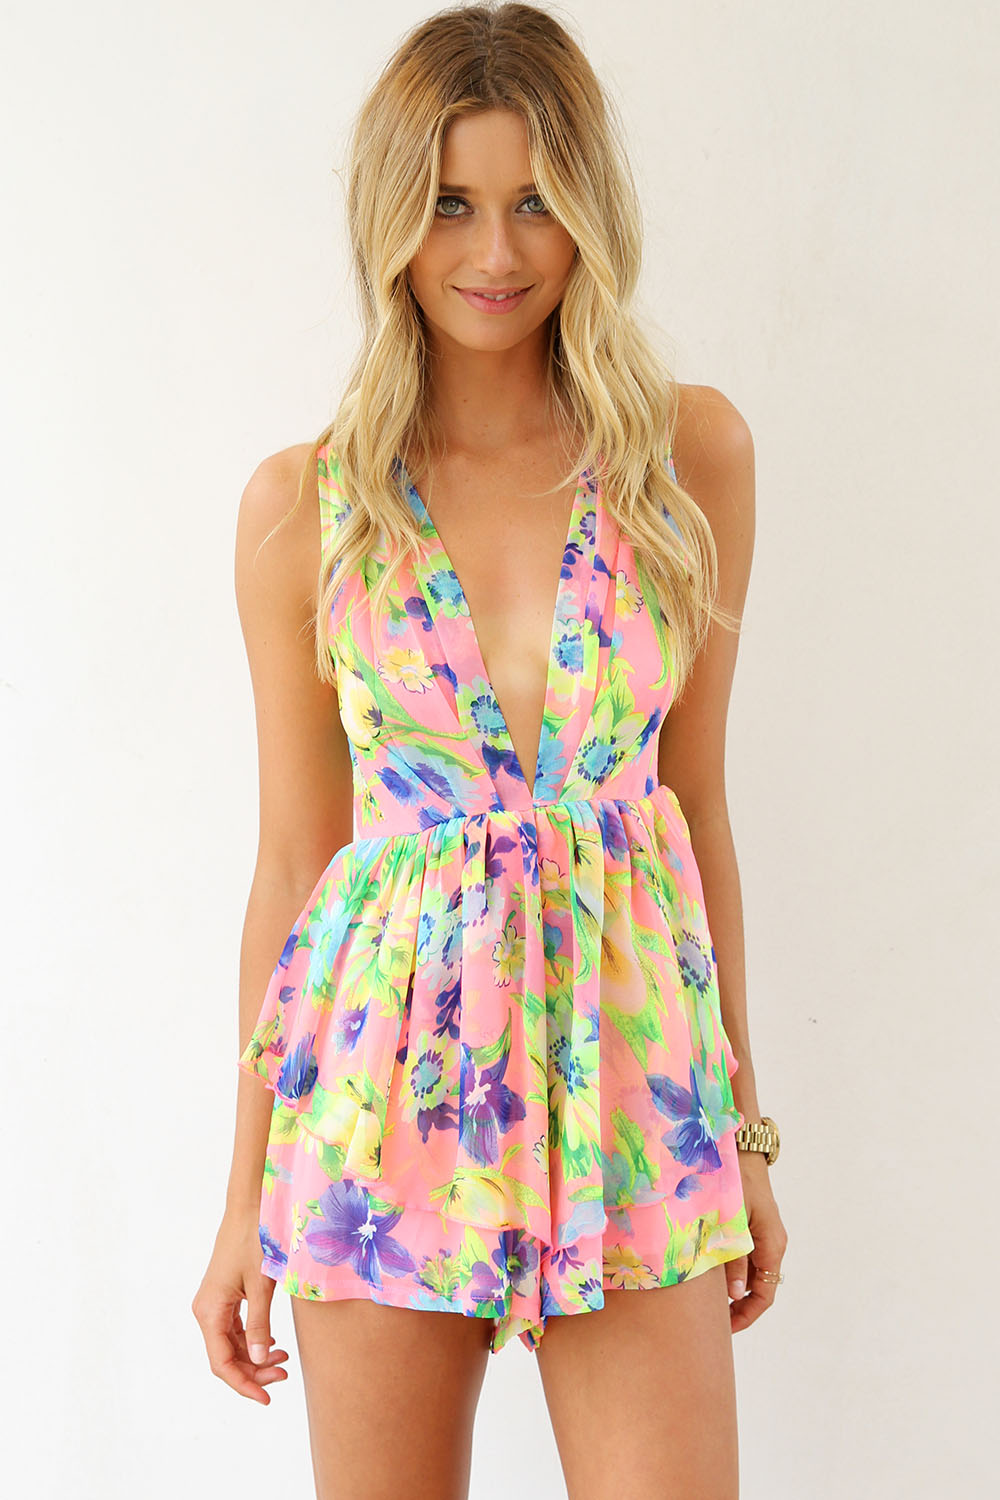 Sabo skirt  arcade playsuit